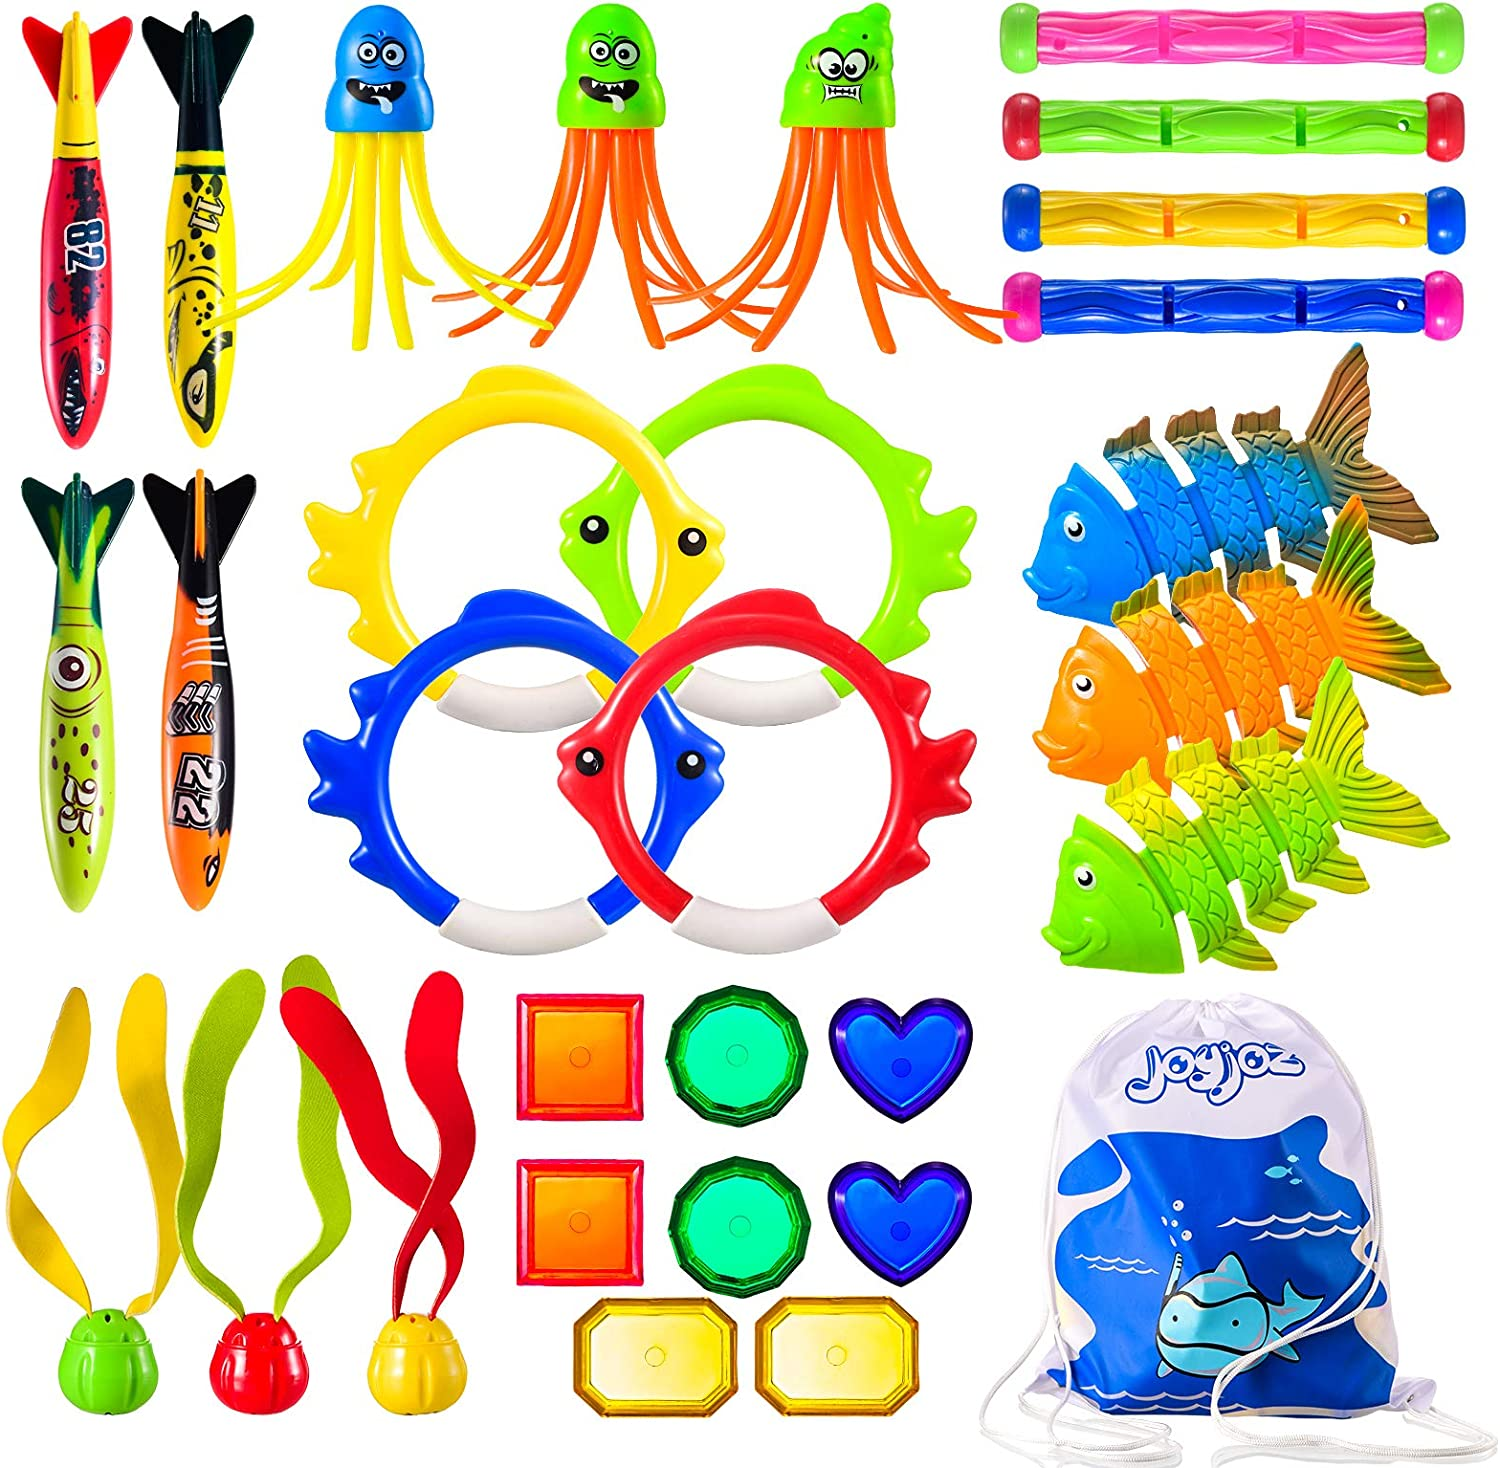 Joyjoz 30 Piece ?Dive Pool Toys Underwater Summer Swimming Pool Toys Gifts for Kids Teens and Adults with Diving Sticks & Rings; Pirate Treasures; Octopus; Fish Toys and Torpedos Set Bundle